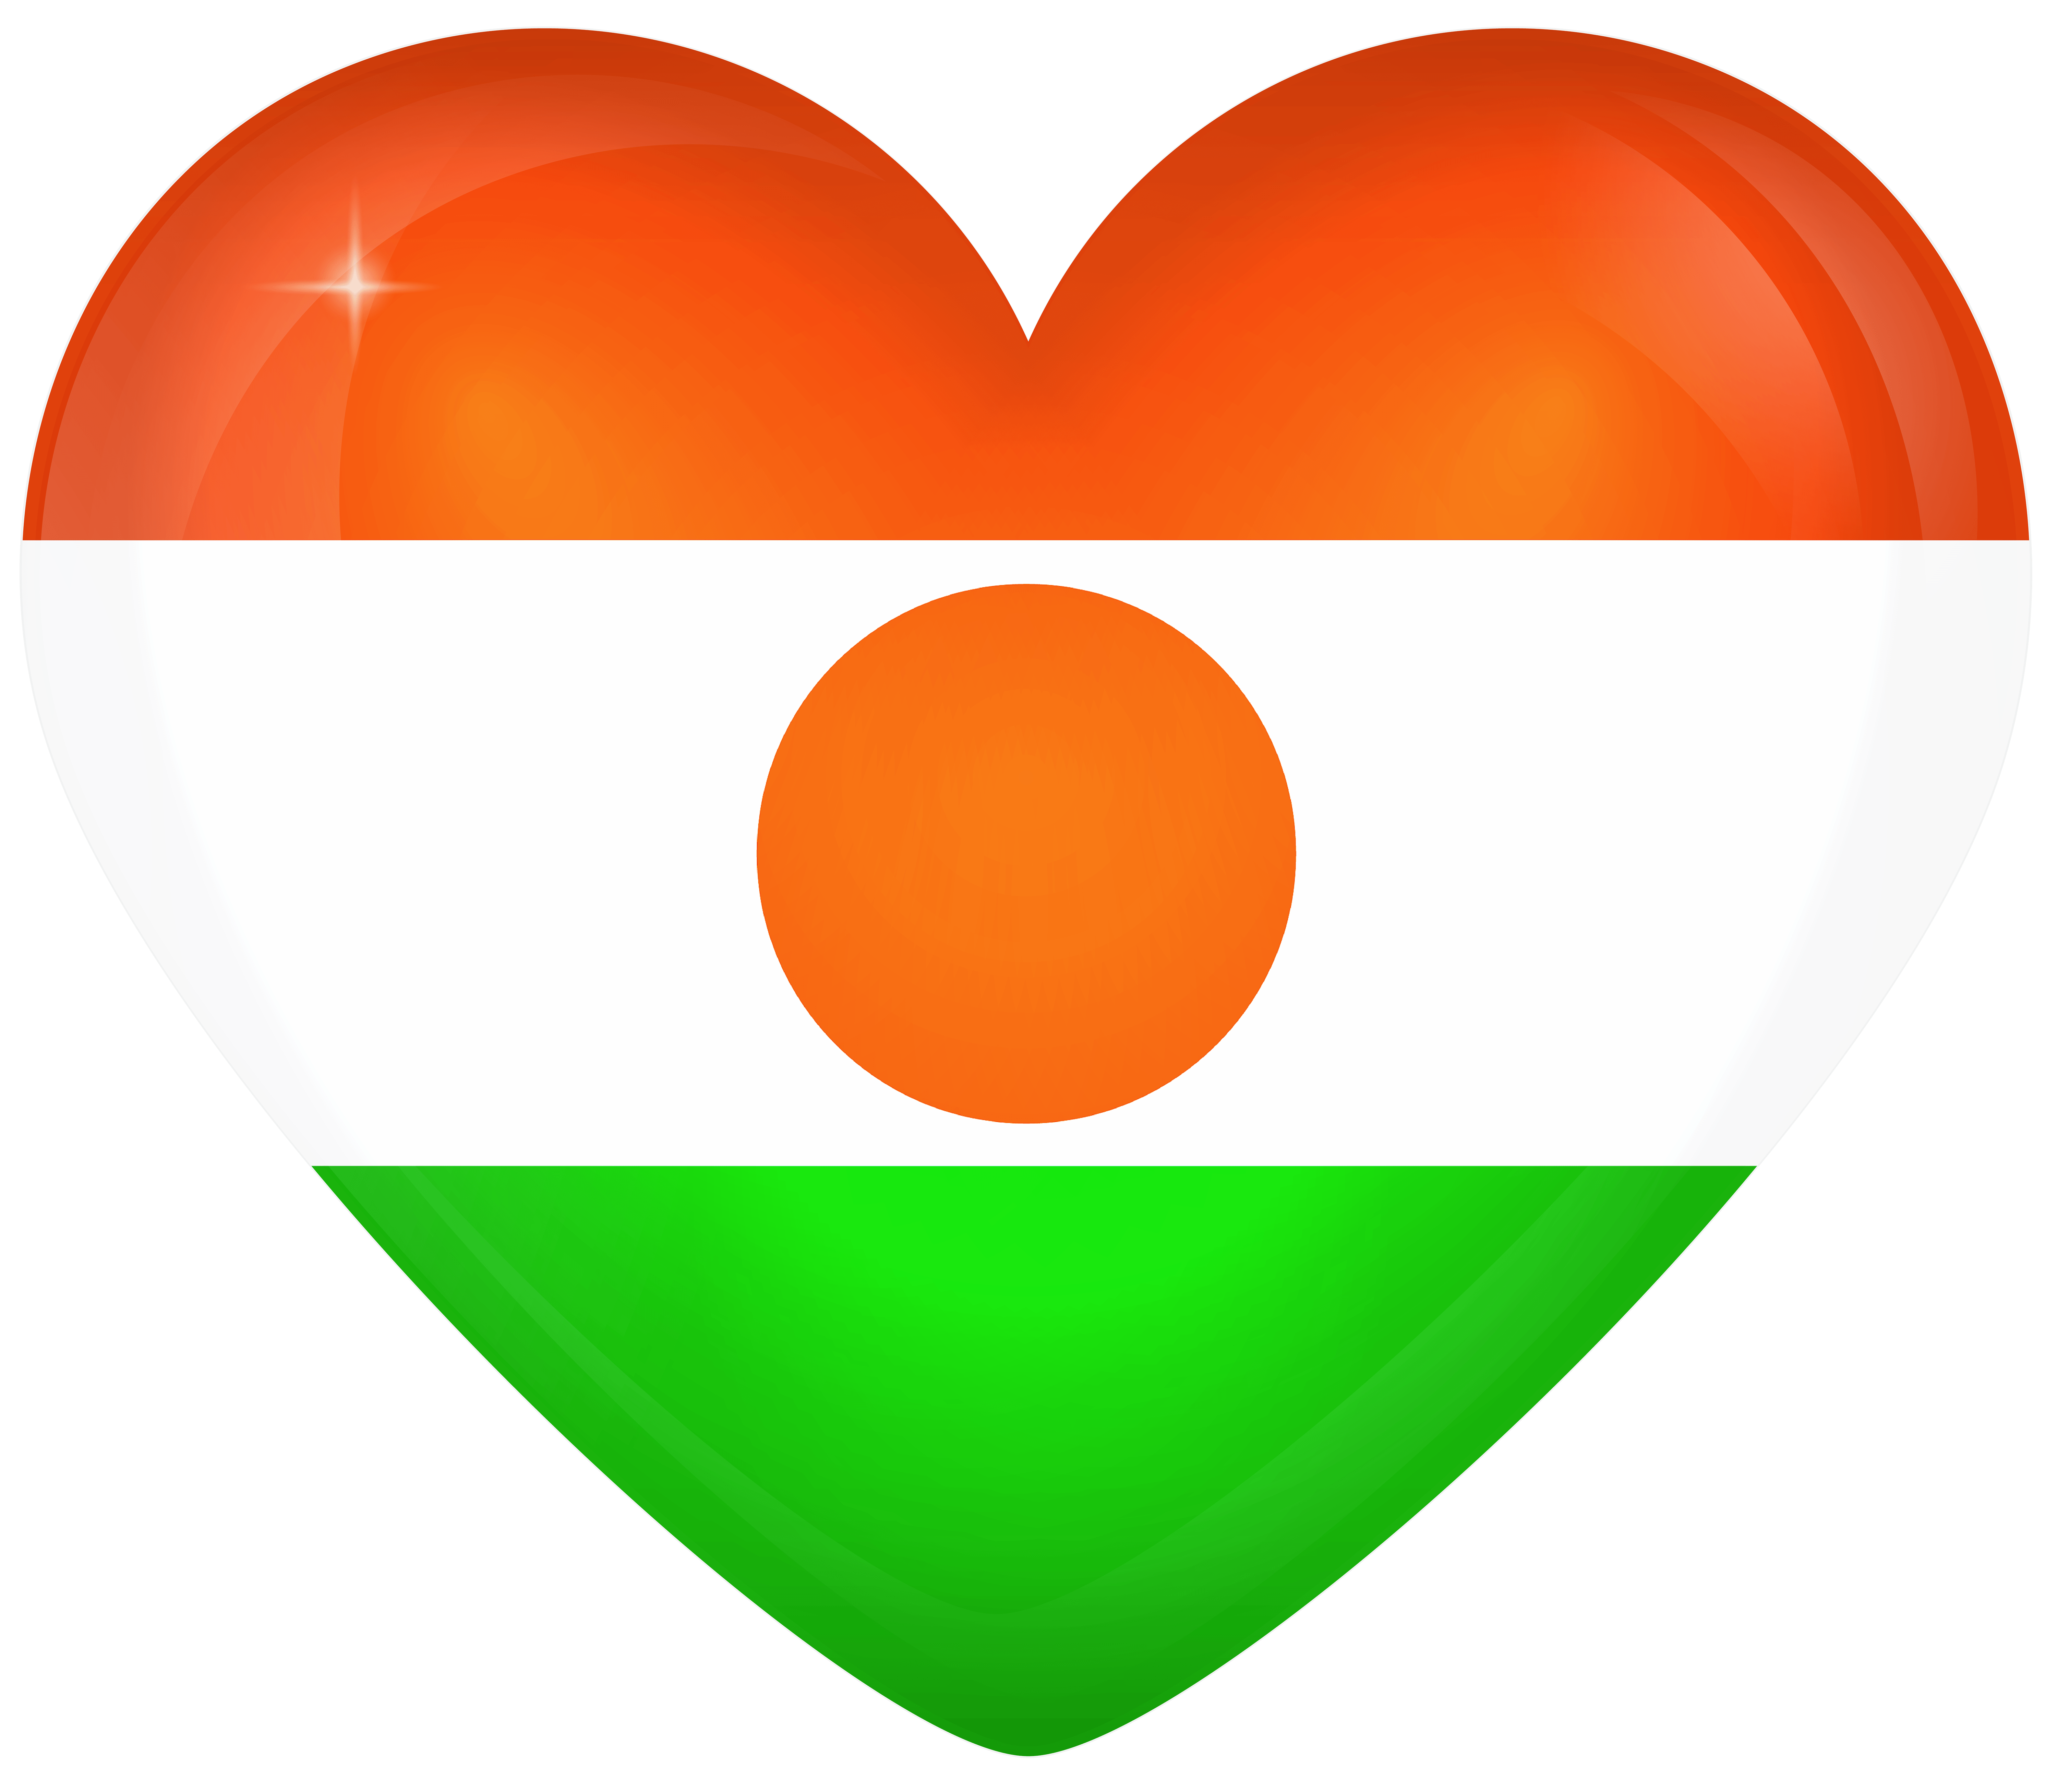 Niger Large Heart Flag | Gallery Yopriceville - High-Quality Images ...